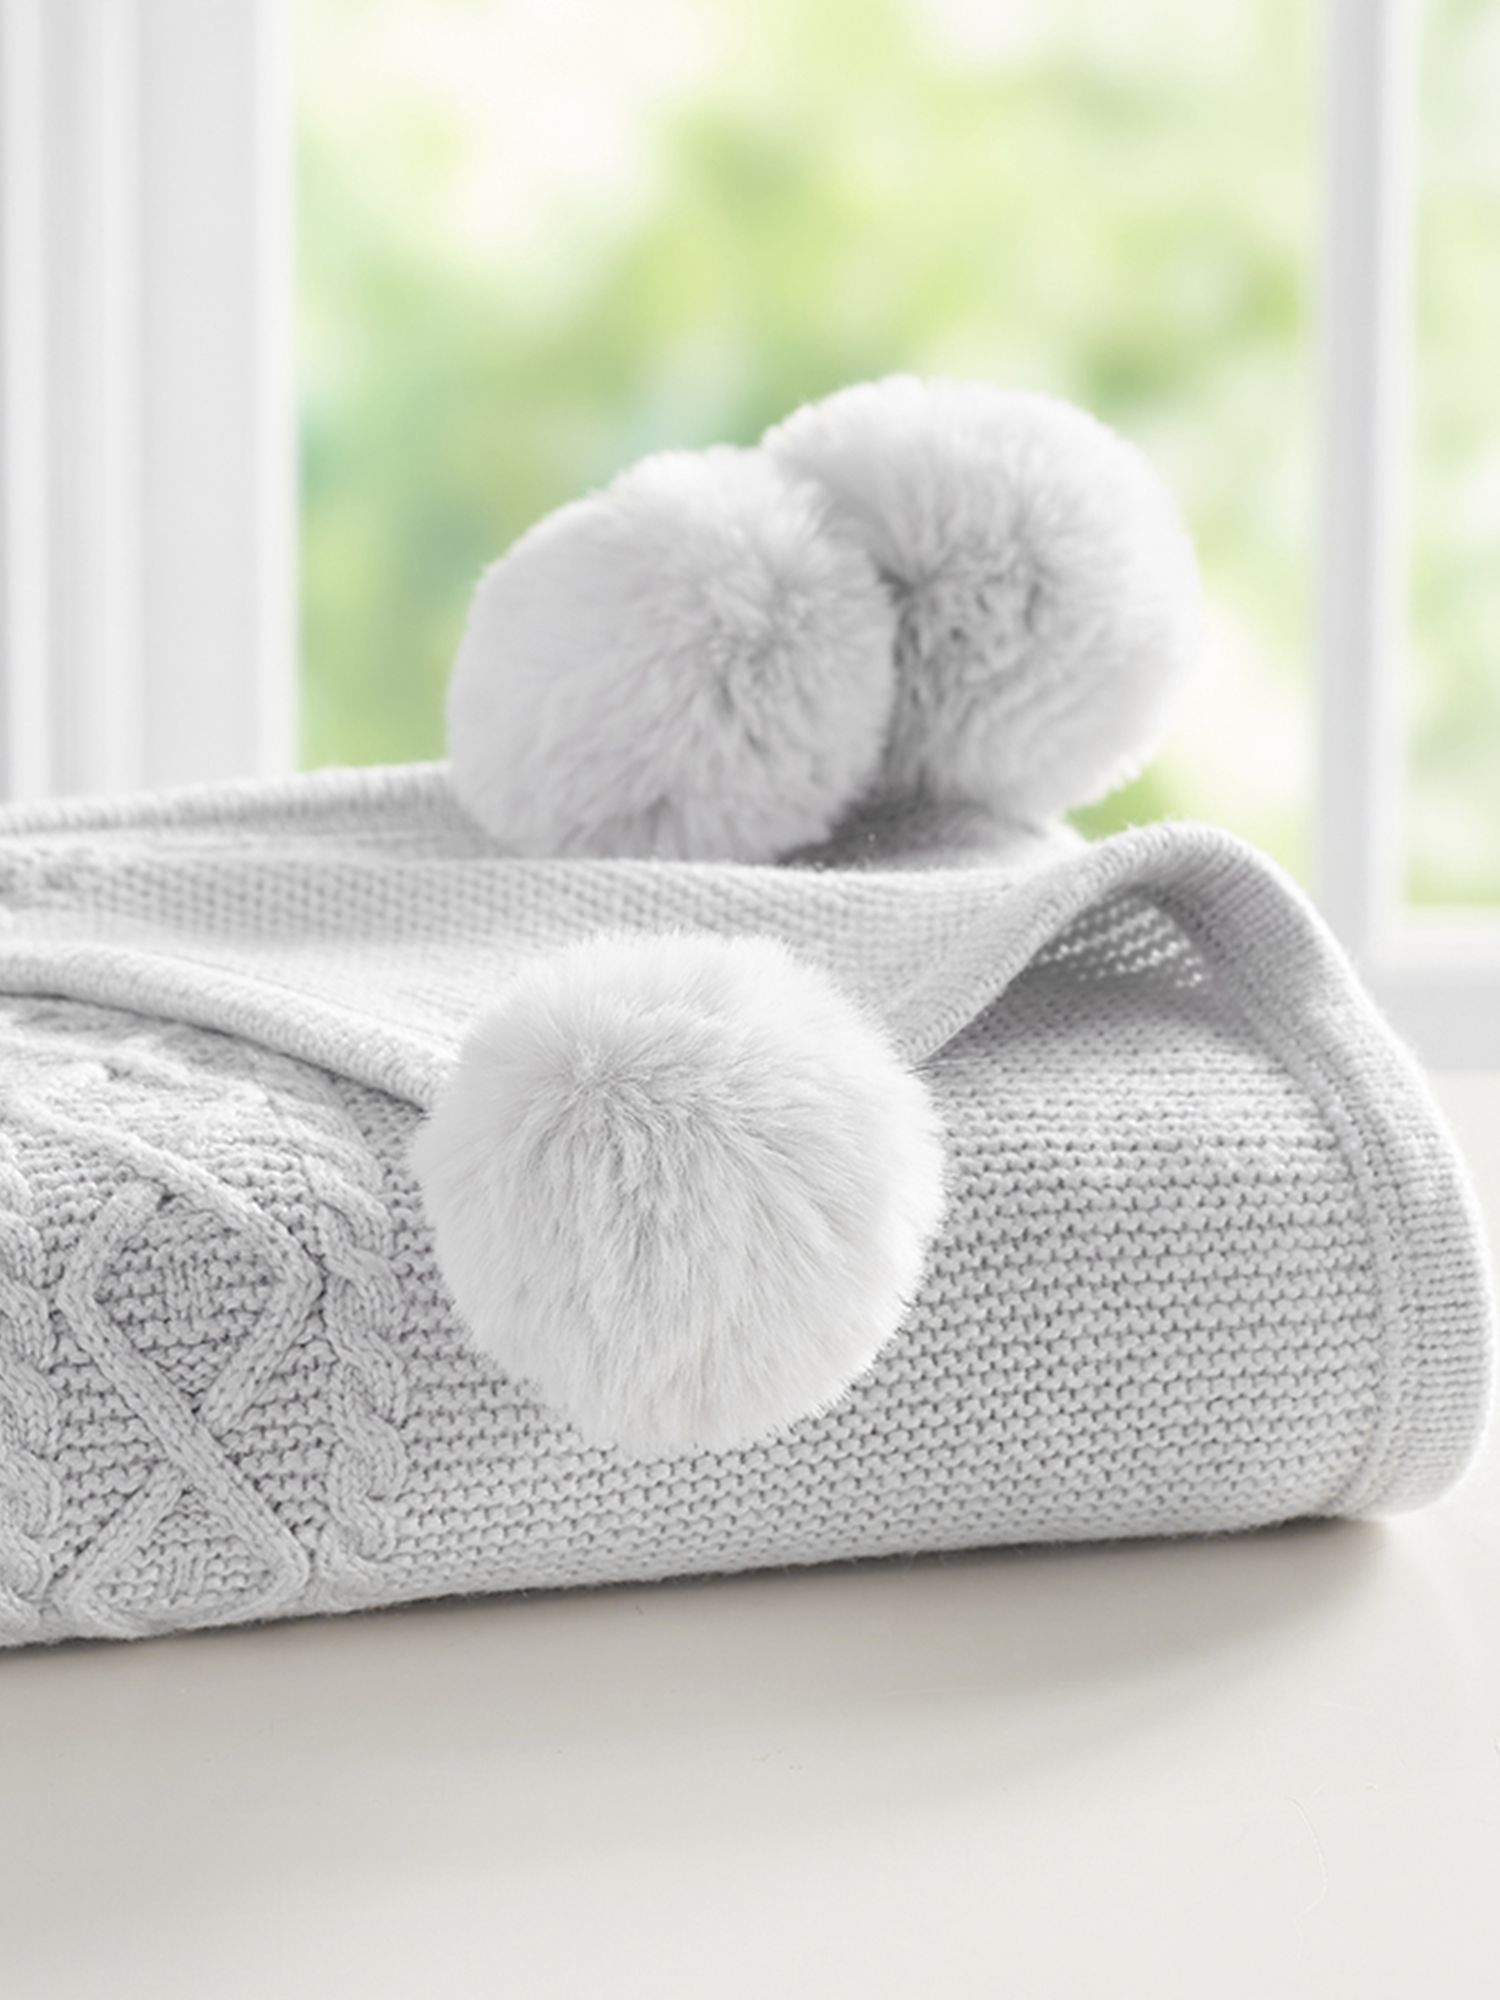 Pottery Barn Kids Cable Knit Pom Pom Baby Blanket Grey At John Lewis Partners